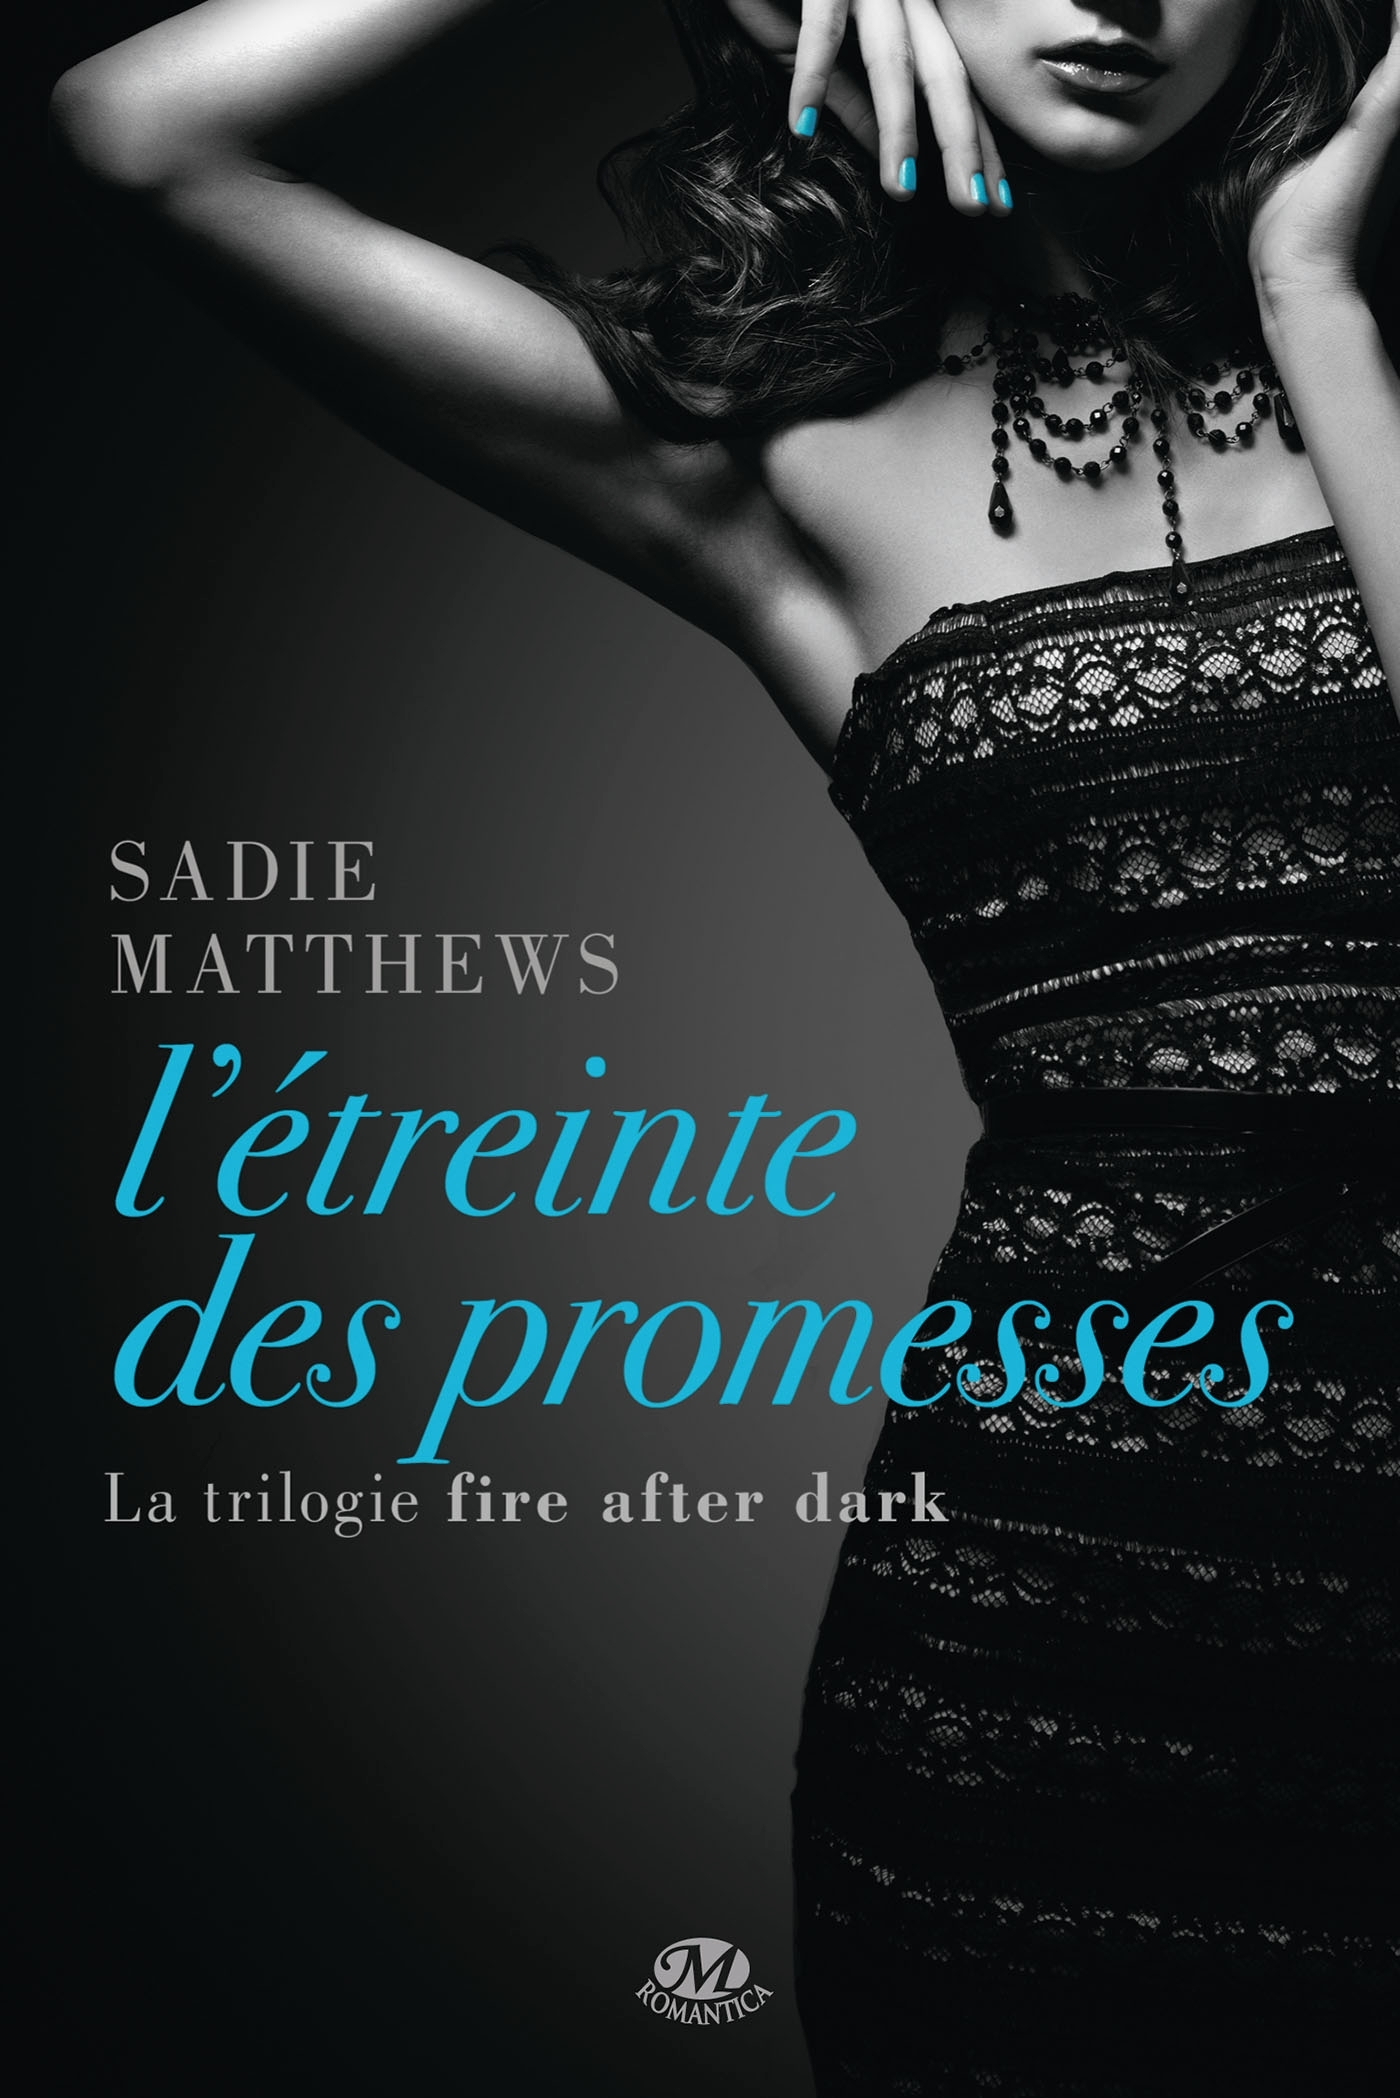 LA TRILOGIE FIRE AFTER DARK, T3 : L'ETREINTE DES PROMESSES